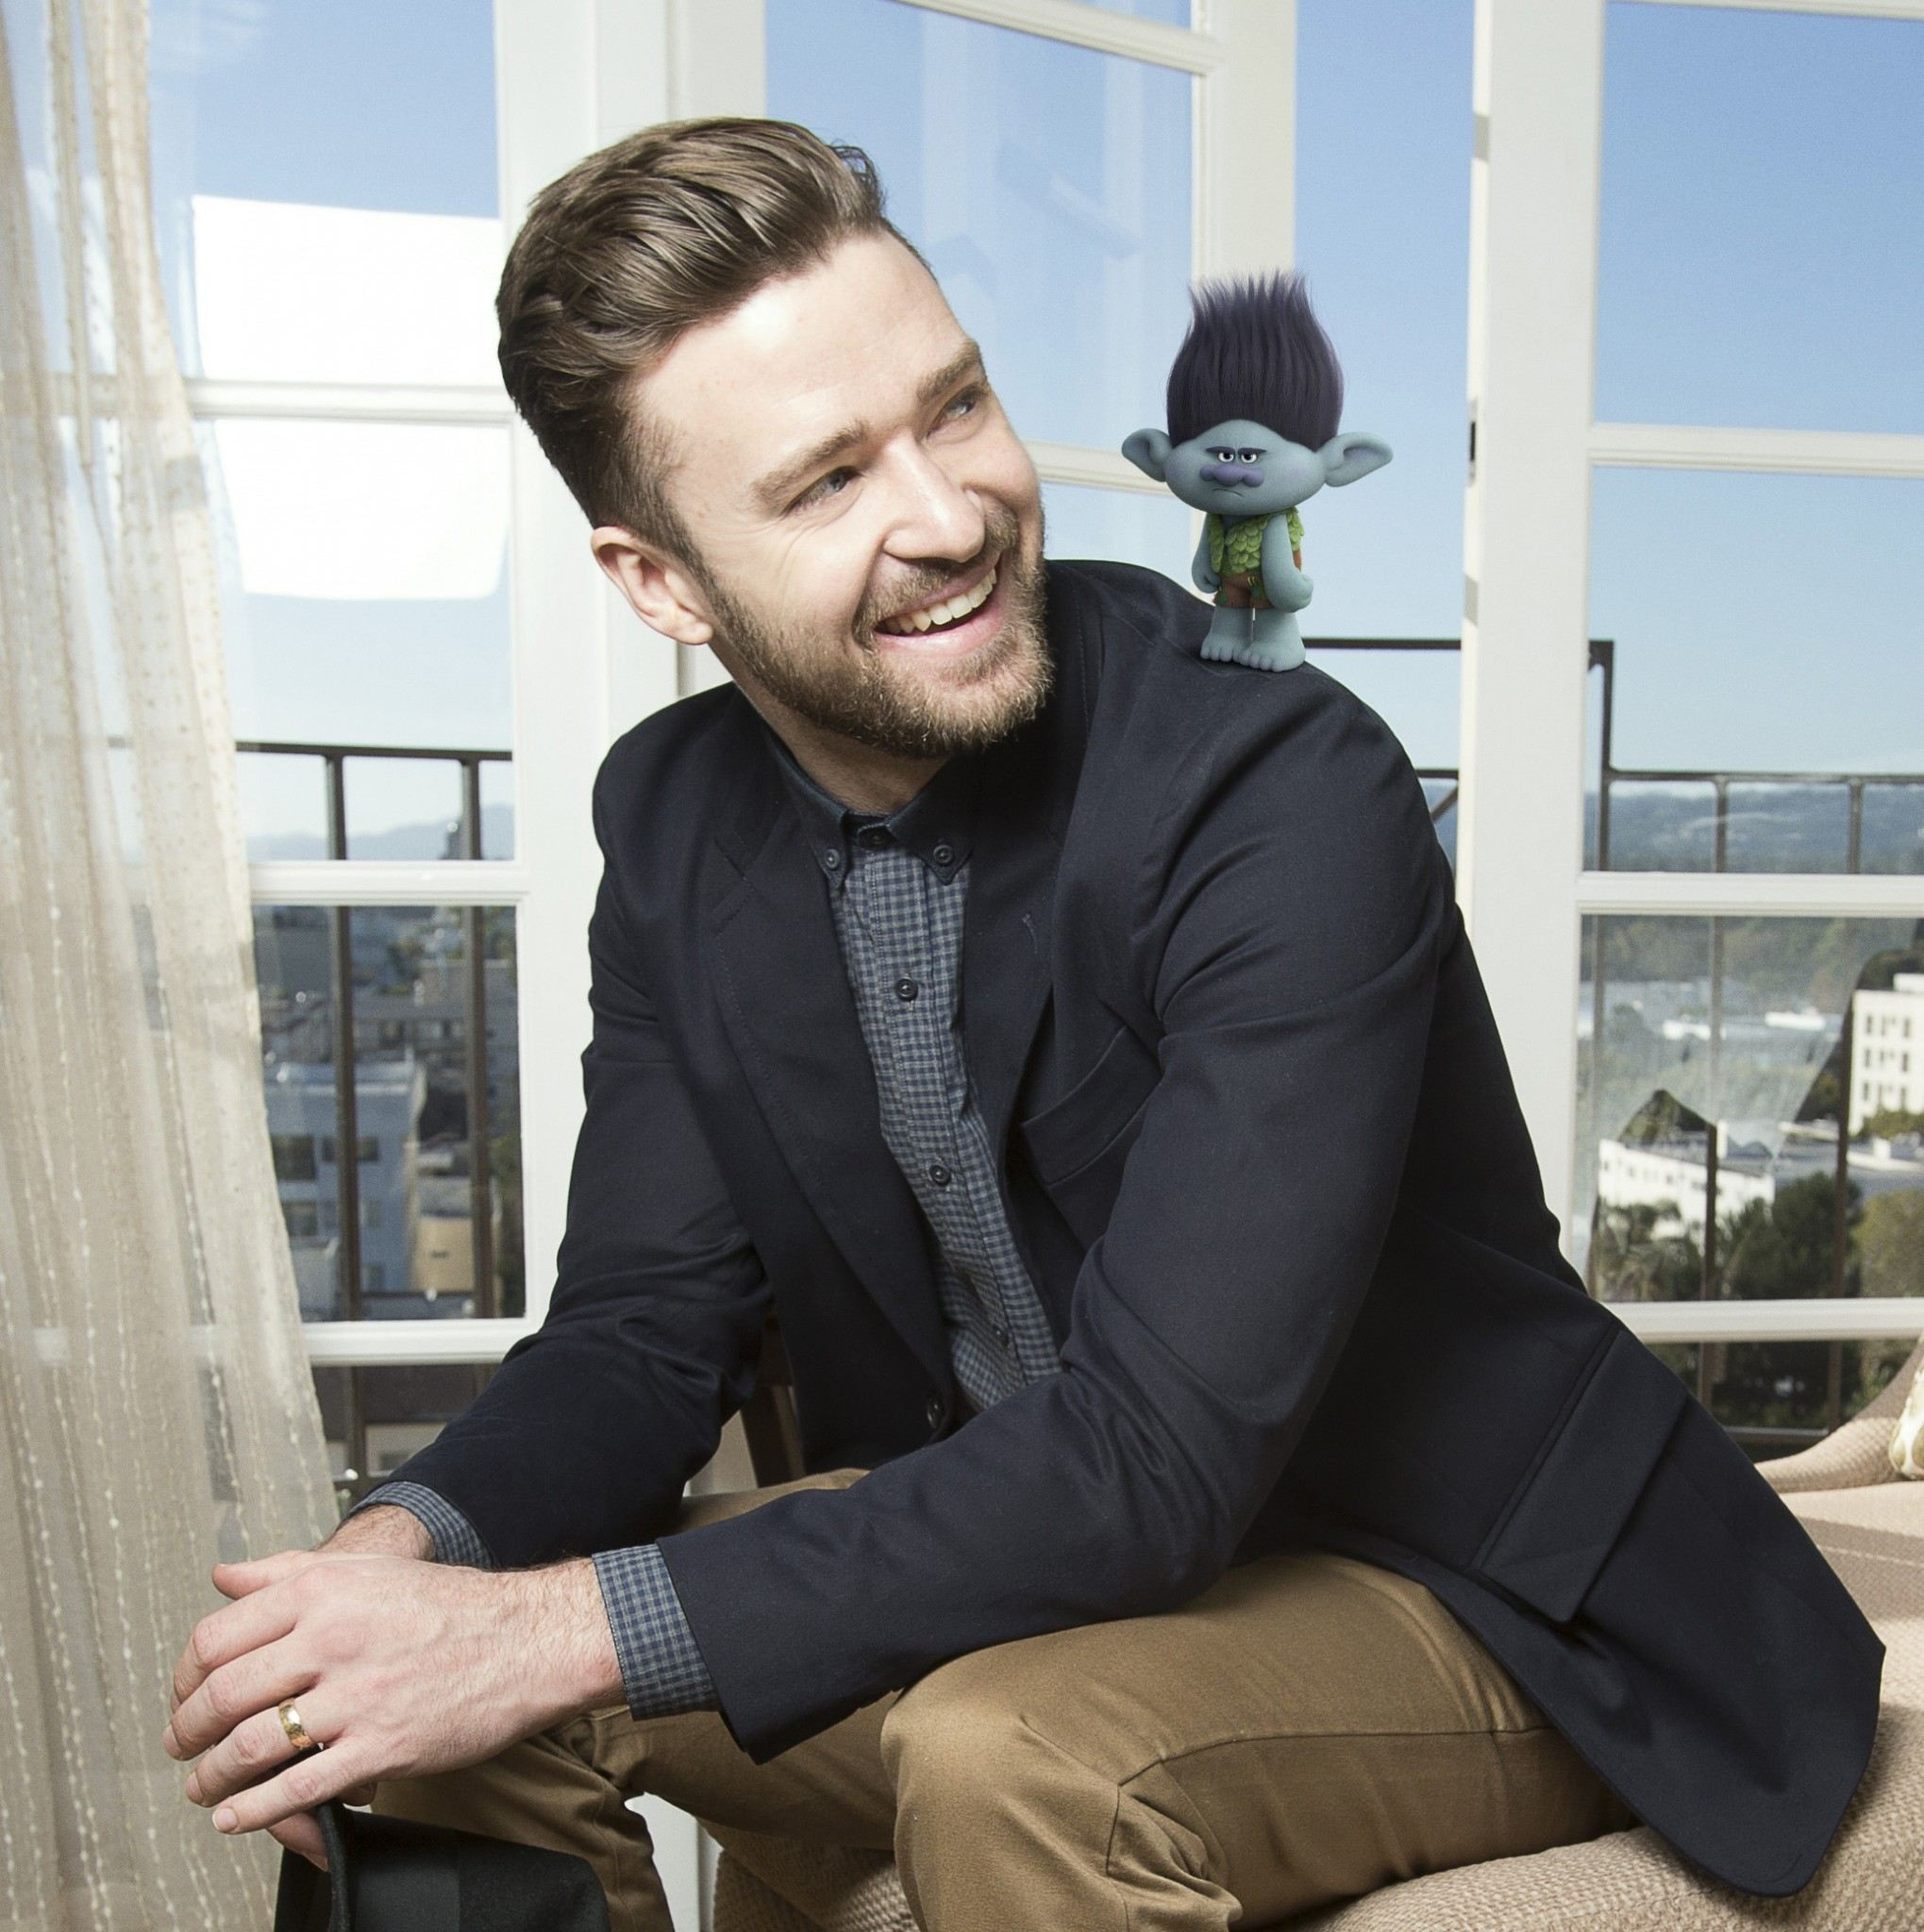 LOS ANGELES, CA - NOVEMBER 25: Singer and actor Justin Timberlake is photographed for Los Angeles Times on November 25, 2013 in Los Angeles, California. PUBLISHED IMAGES. (Photo by Kirk McKoy/Contour by Getty Images) *** Local Caption ***